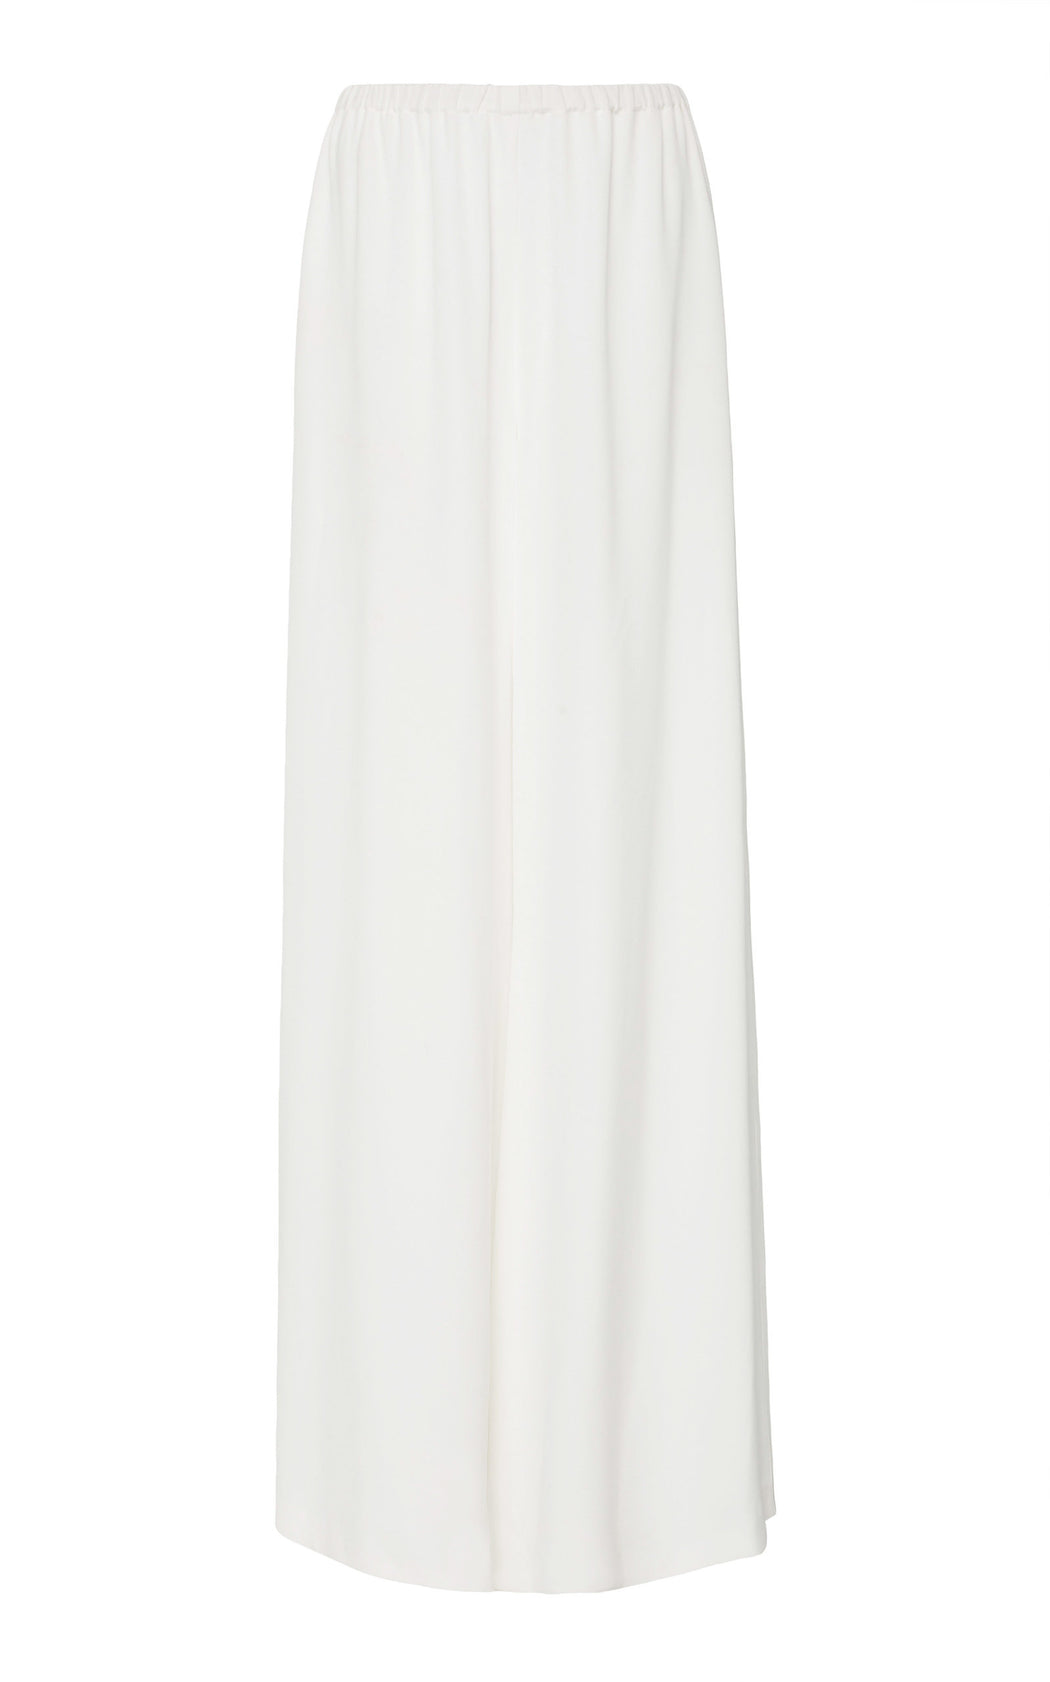 White Satin Wide Leg Pant